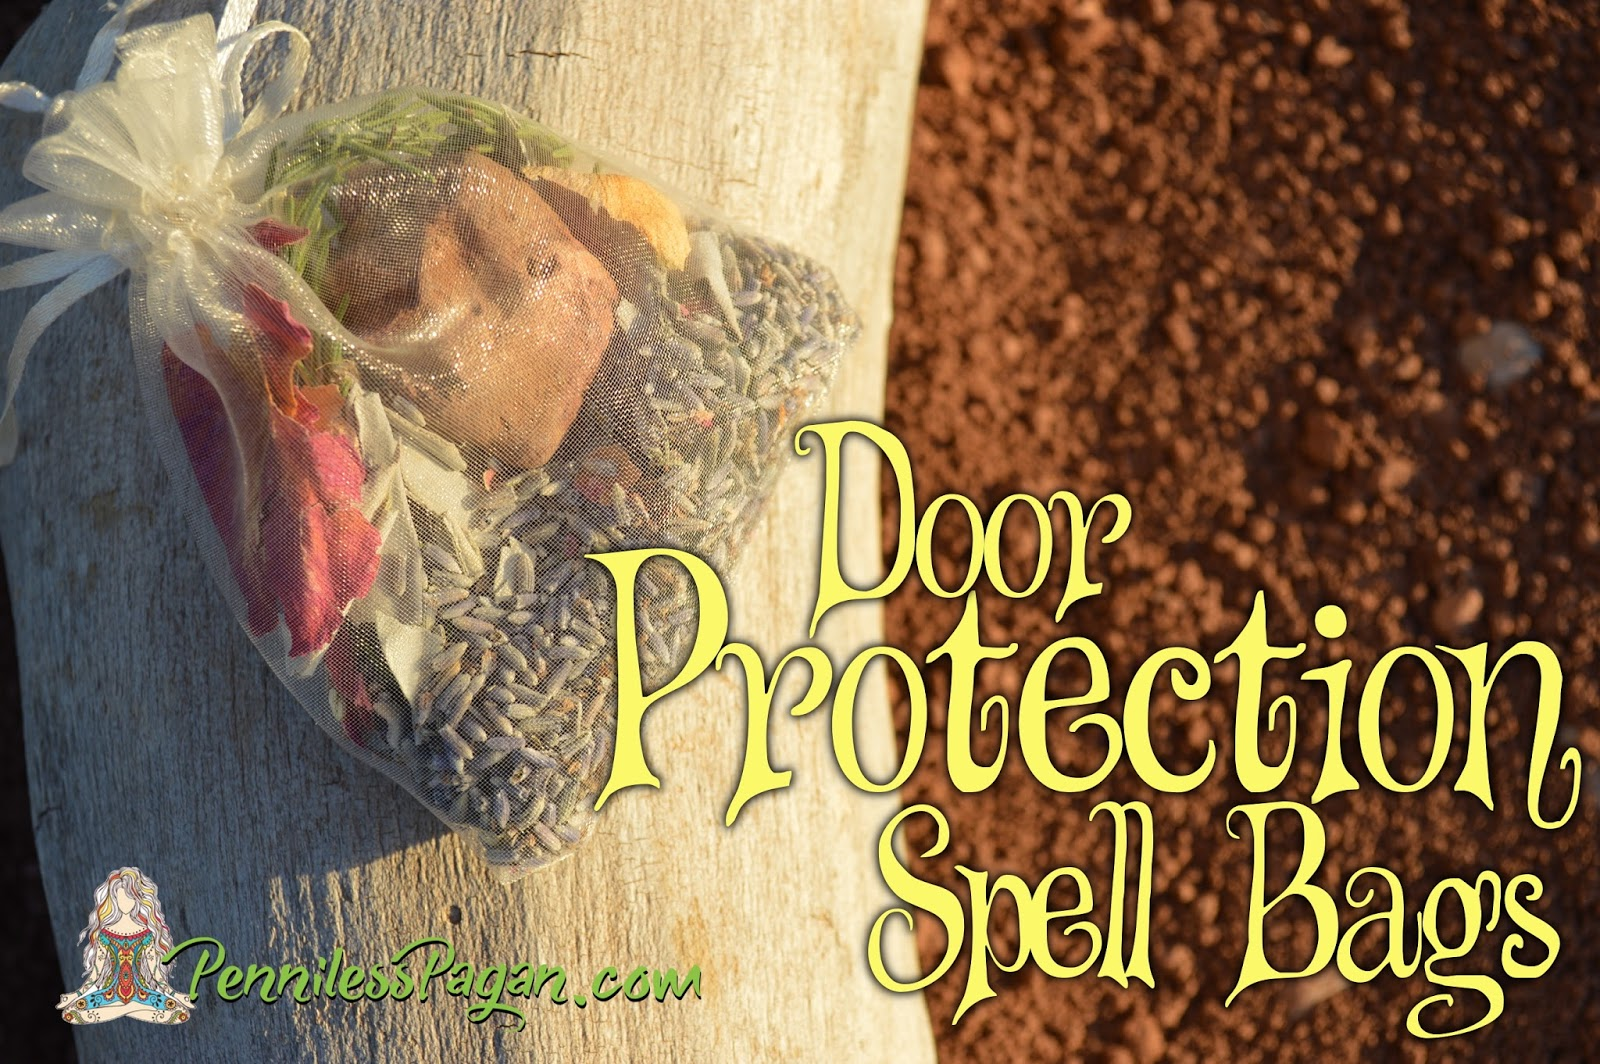 Penniless Pagan: Door Protection Spell Bags